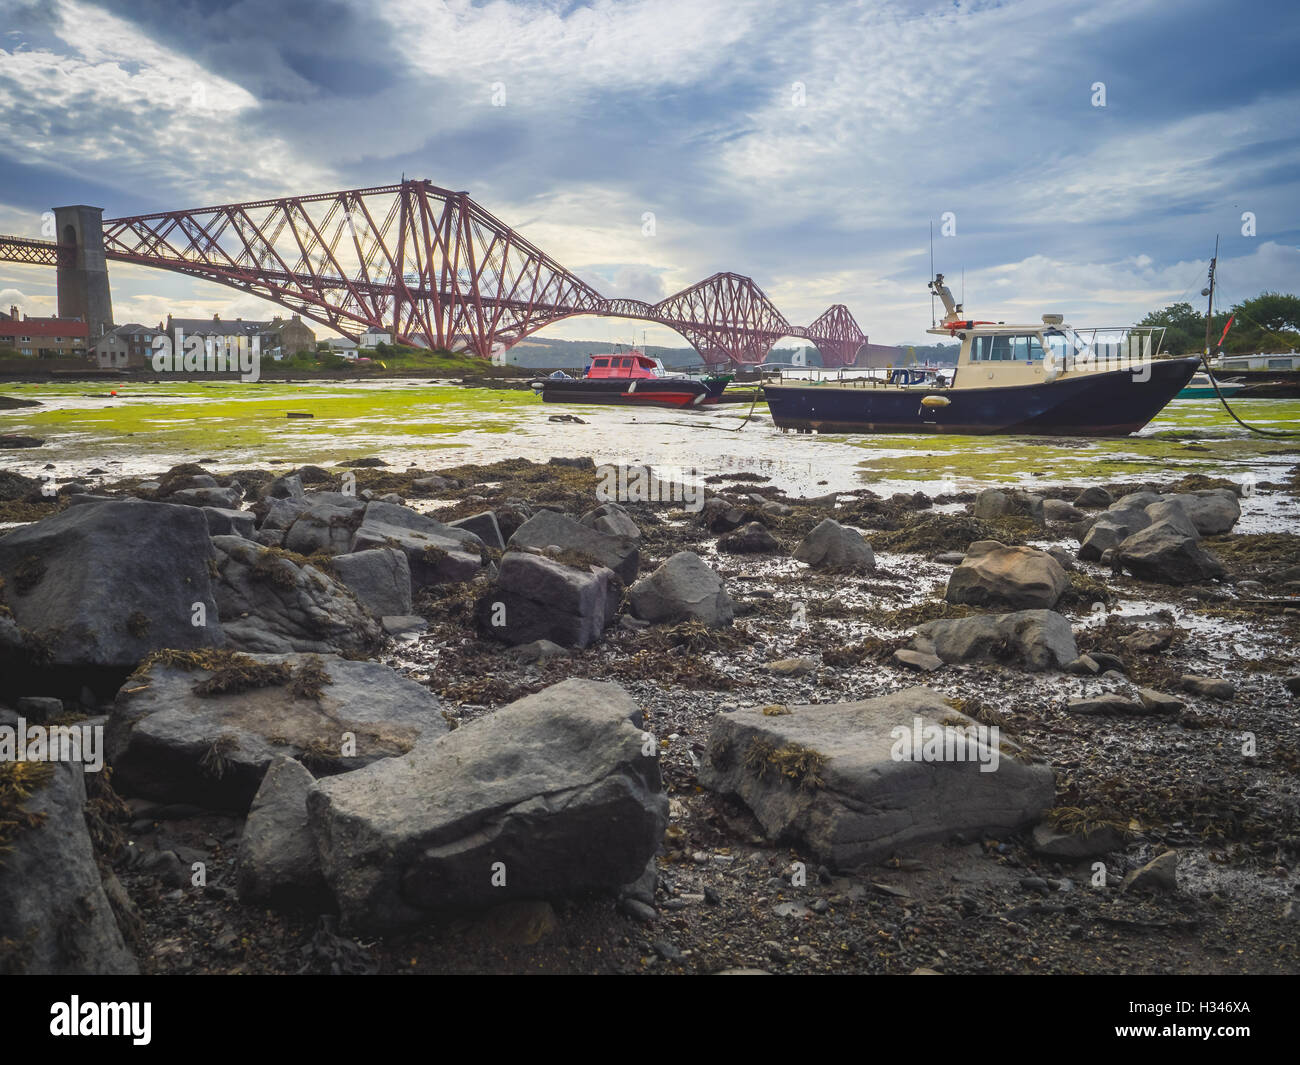 Boat moored in front of the Forth Rail Bridge in Edinburgh, Scotland, connecting the towns of North and South - Stock Image